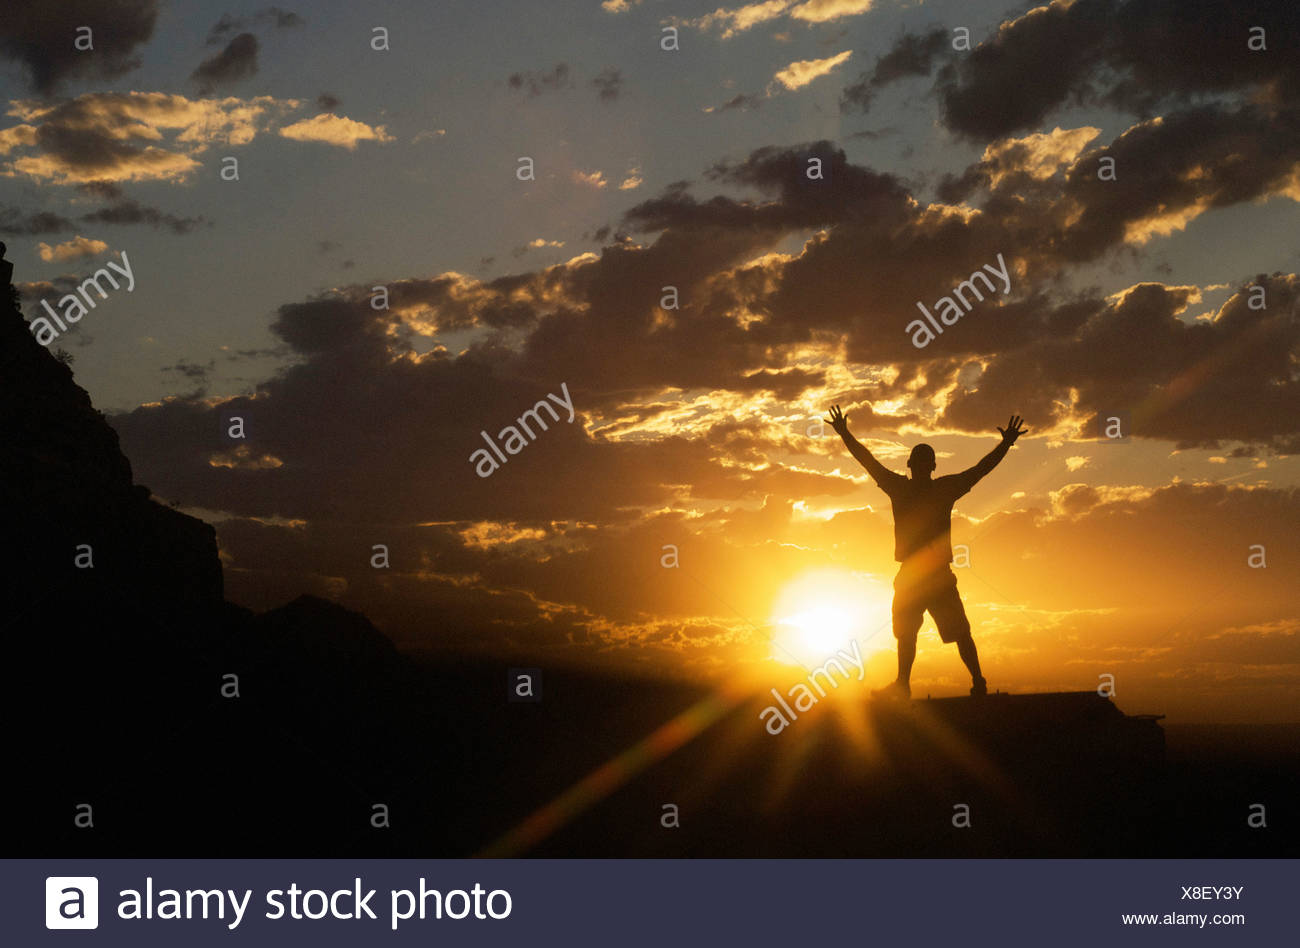 nature scenery and inspirational concepts: silhouette of man celebrating the dramatic sunset sky standing arms spread wide - Stock Image